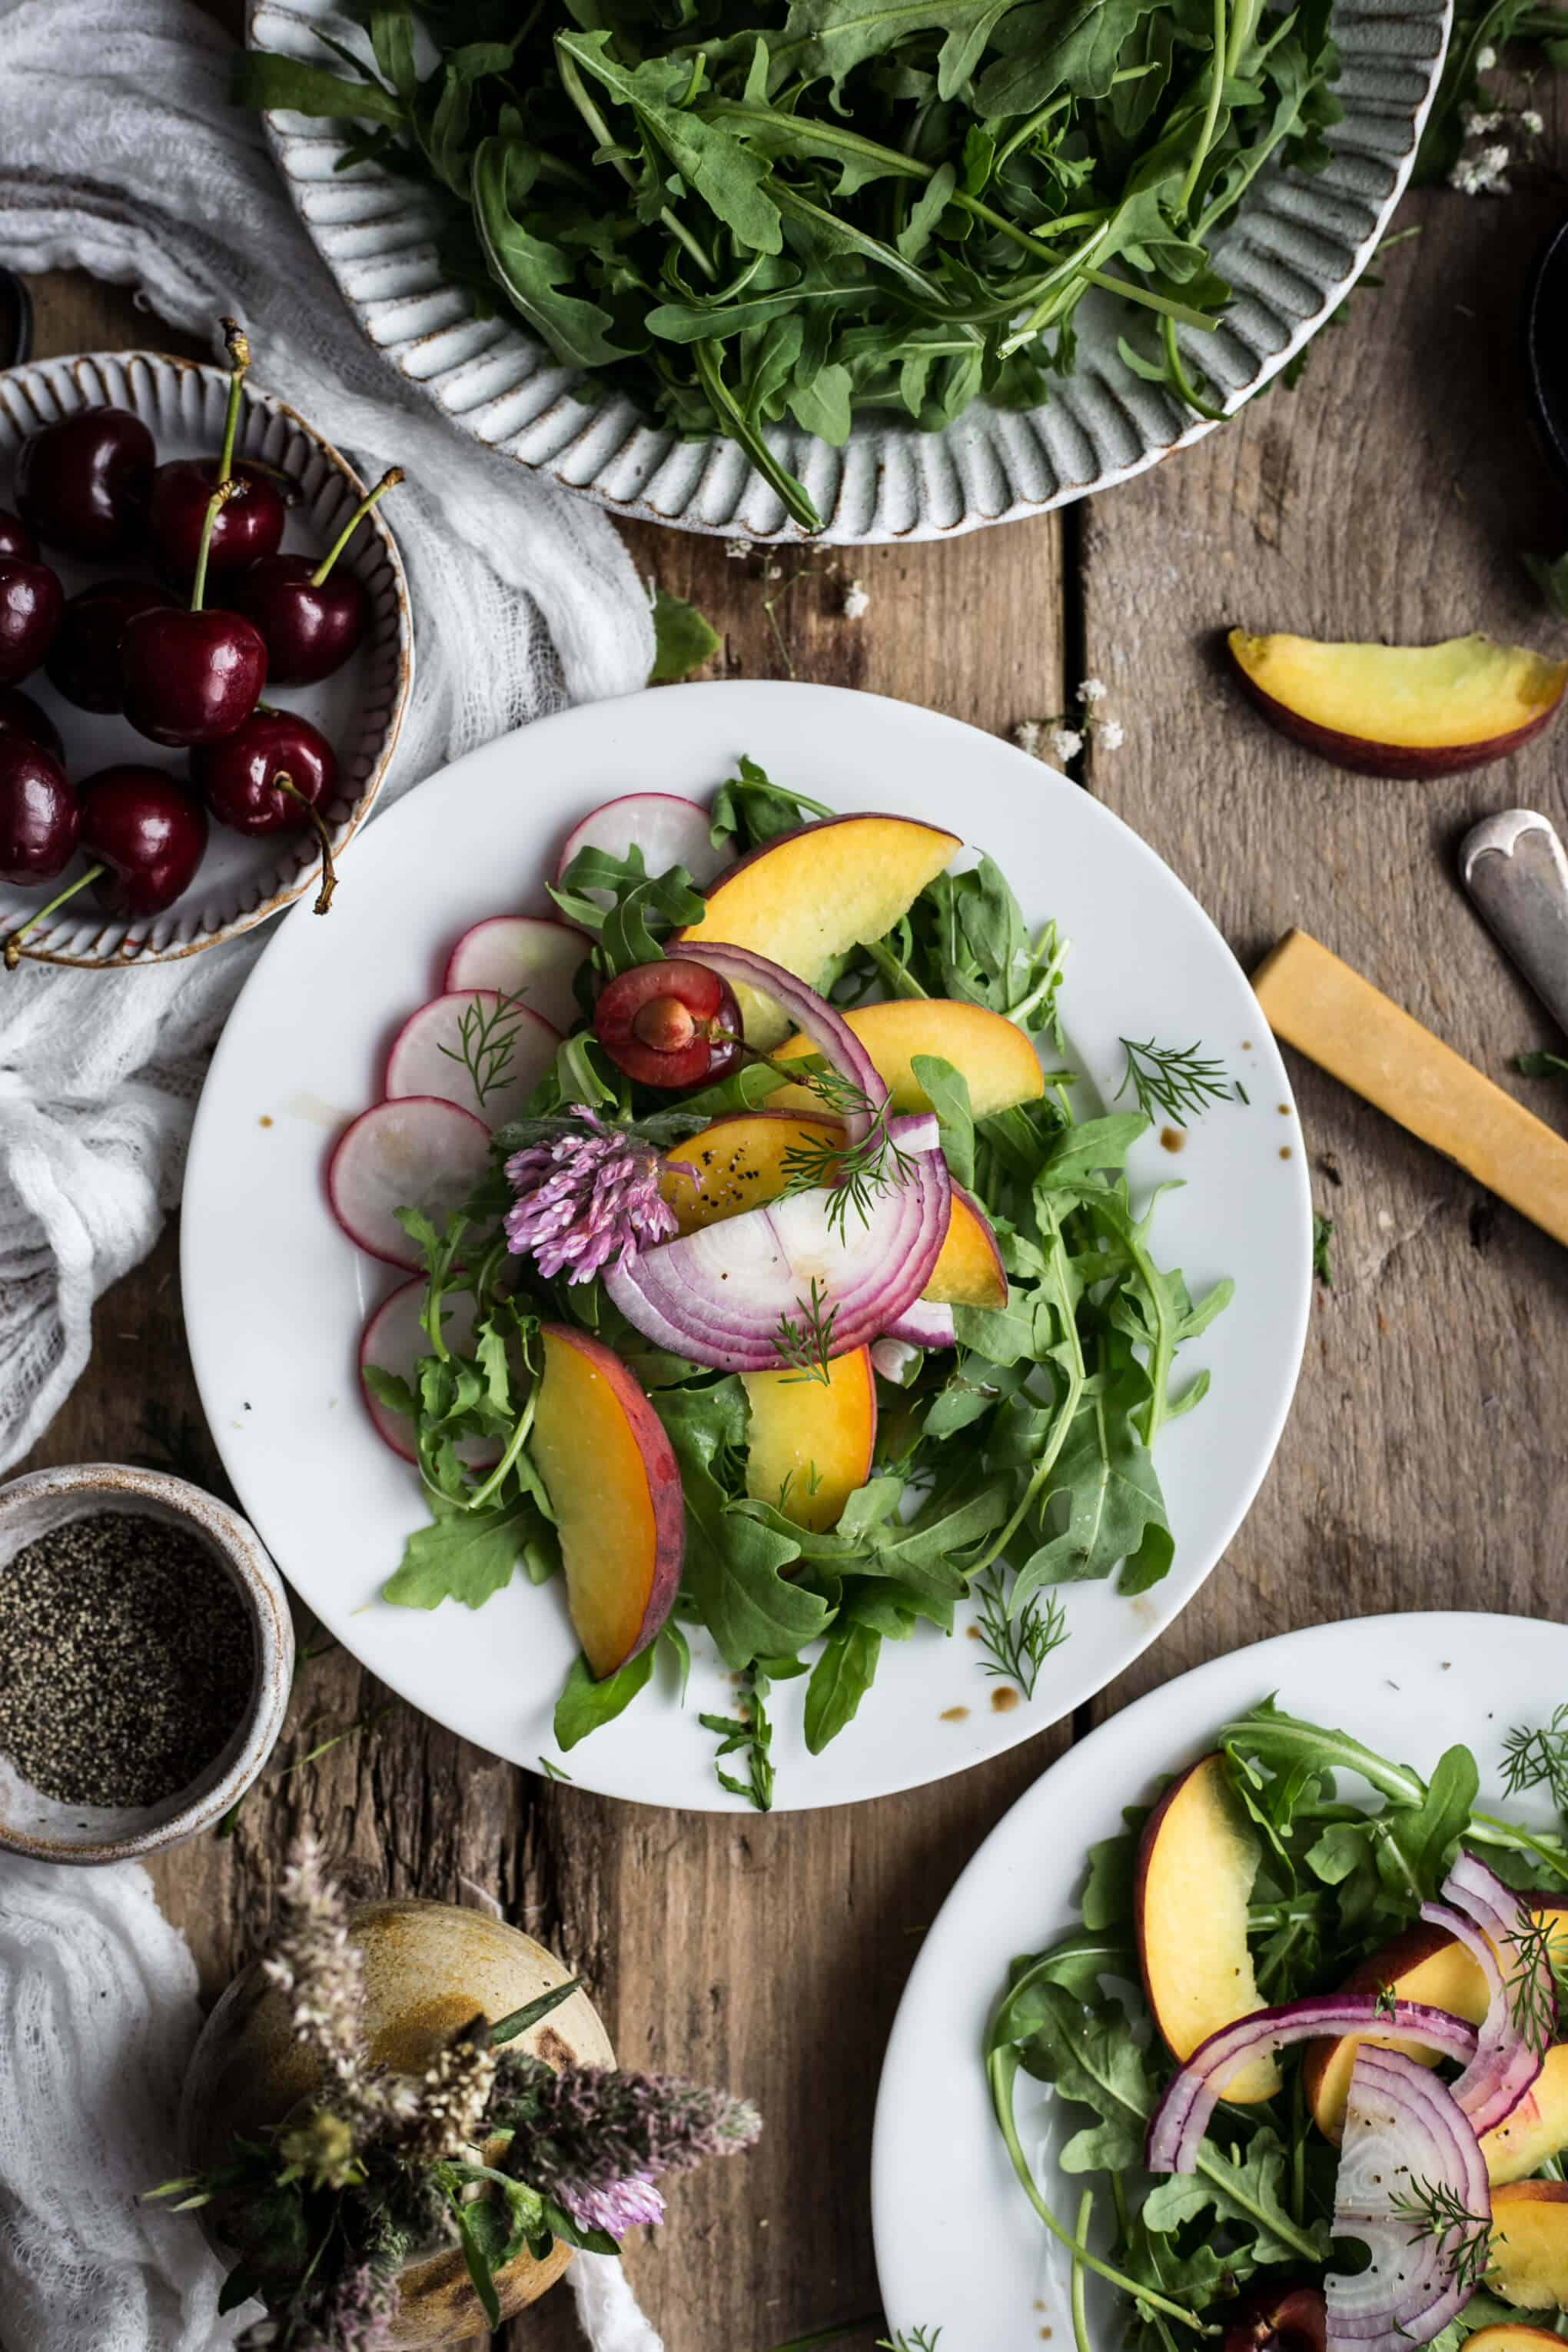 Peach and rocket salad with dill | via @annabanana.co